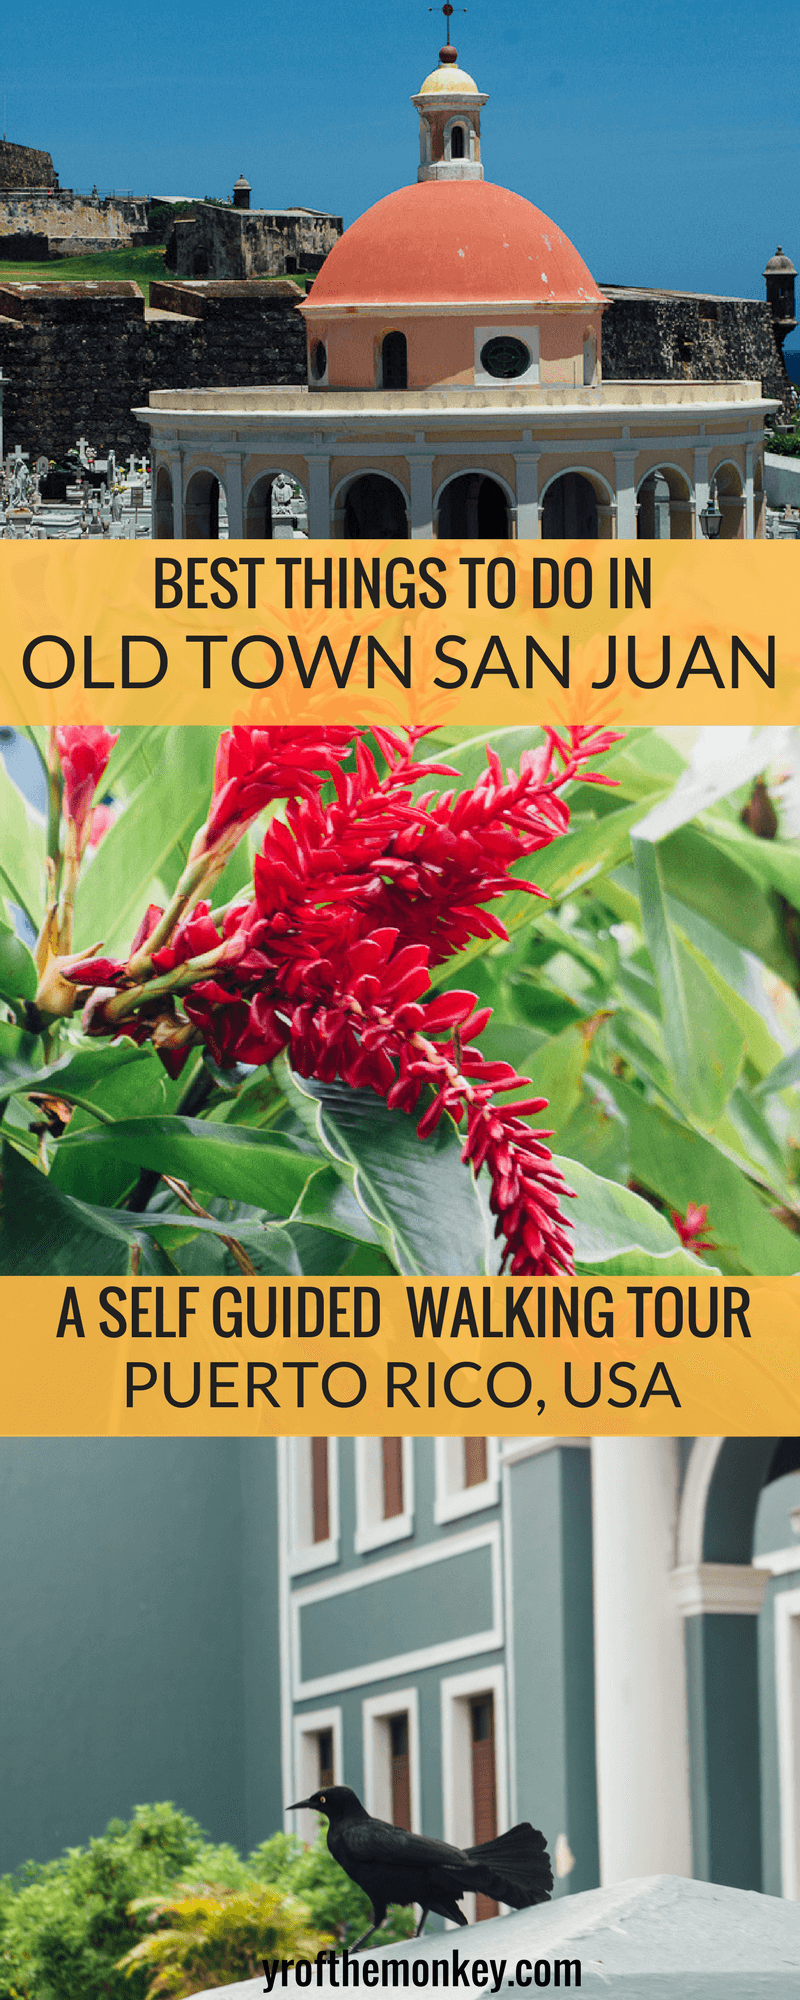 This is a complete self guided walking tour of old town San Juan, the best part of Puerto Rico, USA. This post is a must read for discovering the best things to do in San Juan's old town and includes a budget boutique hotel, plus a walking tour of the city's vibrant art, architecture and museums. Pin this to your USA or Caribbean travels board now! #USA #Caribbean #PuertoRico #SanJuan